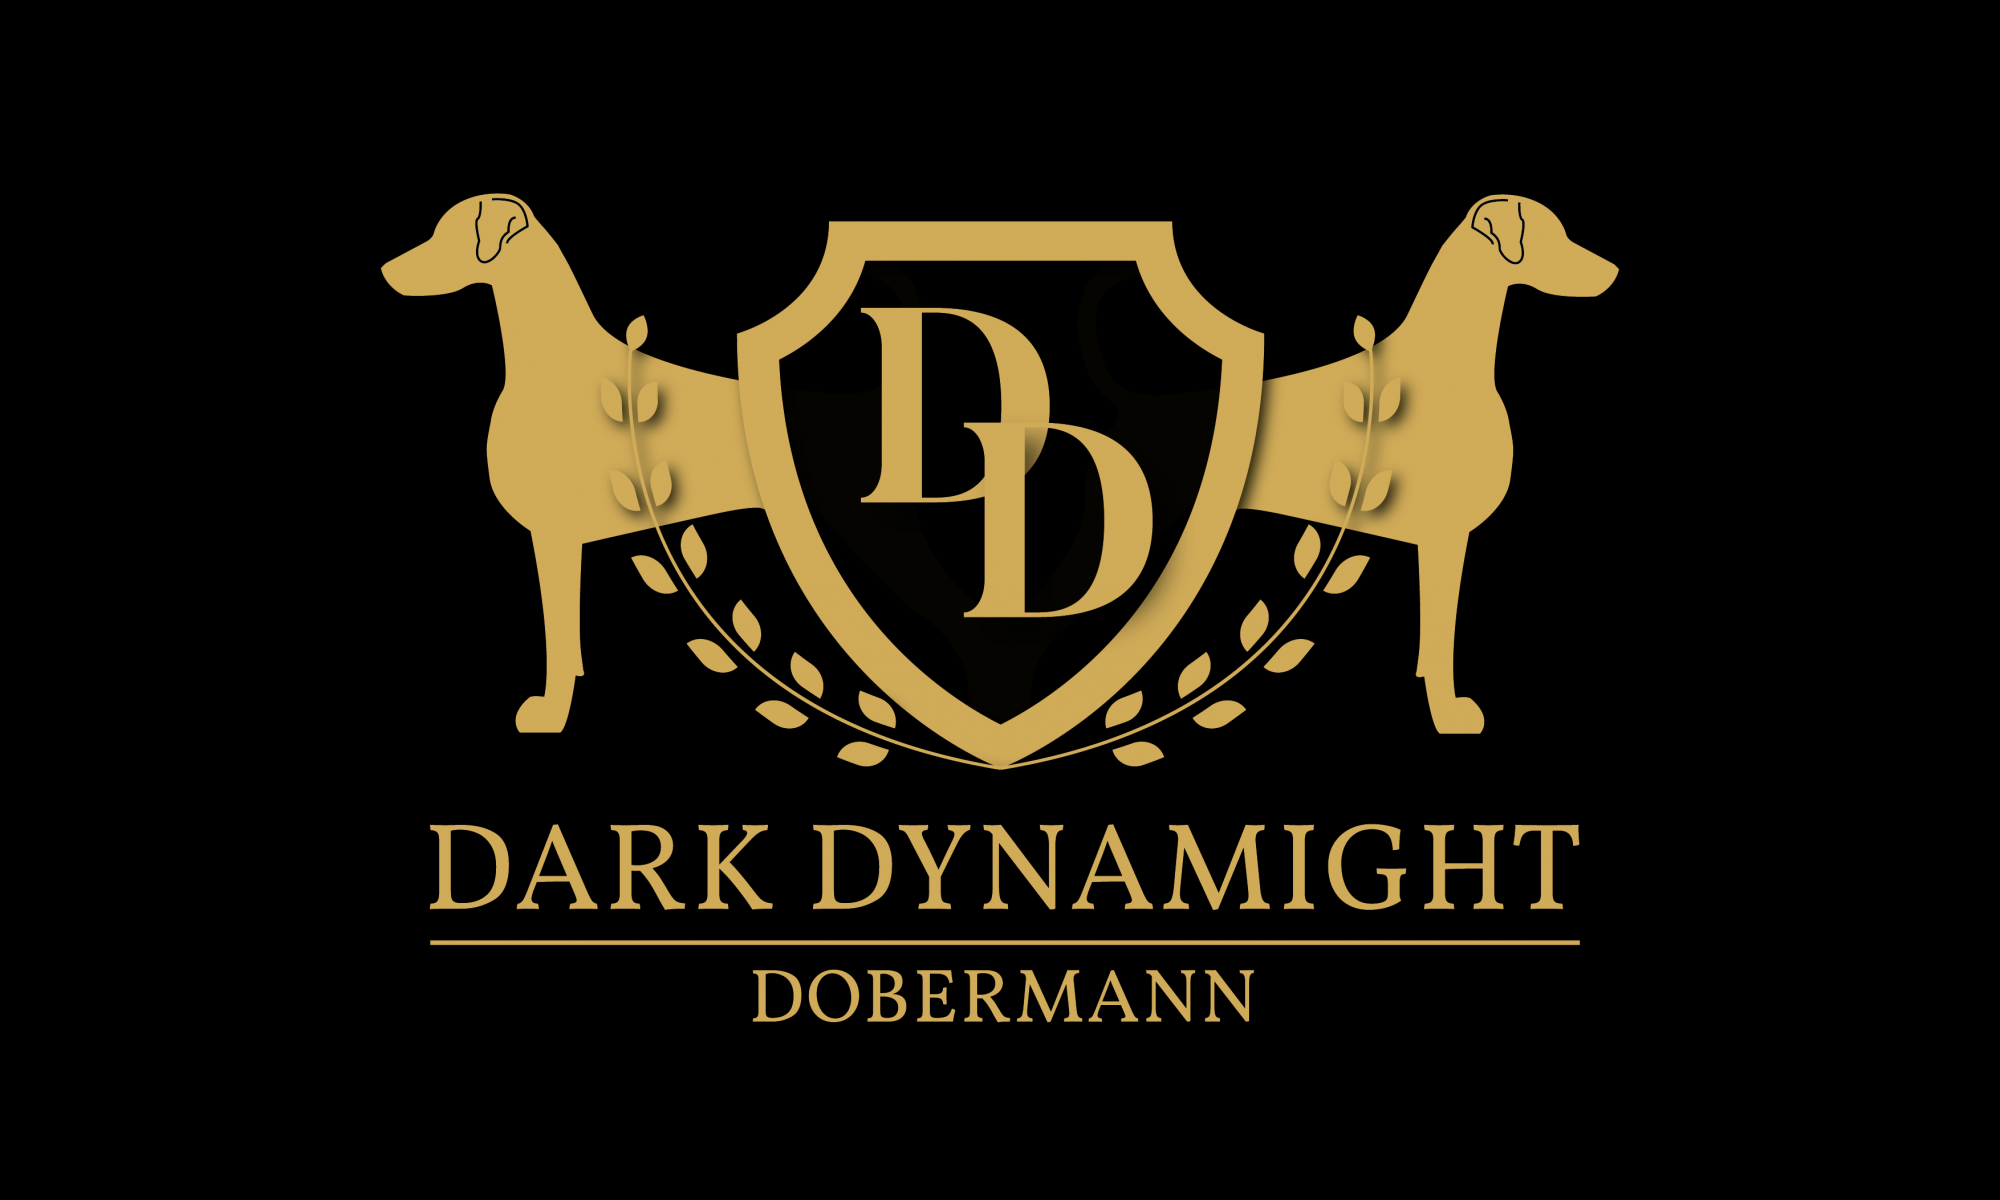 Dark Dynamight